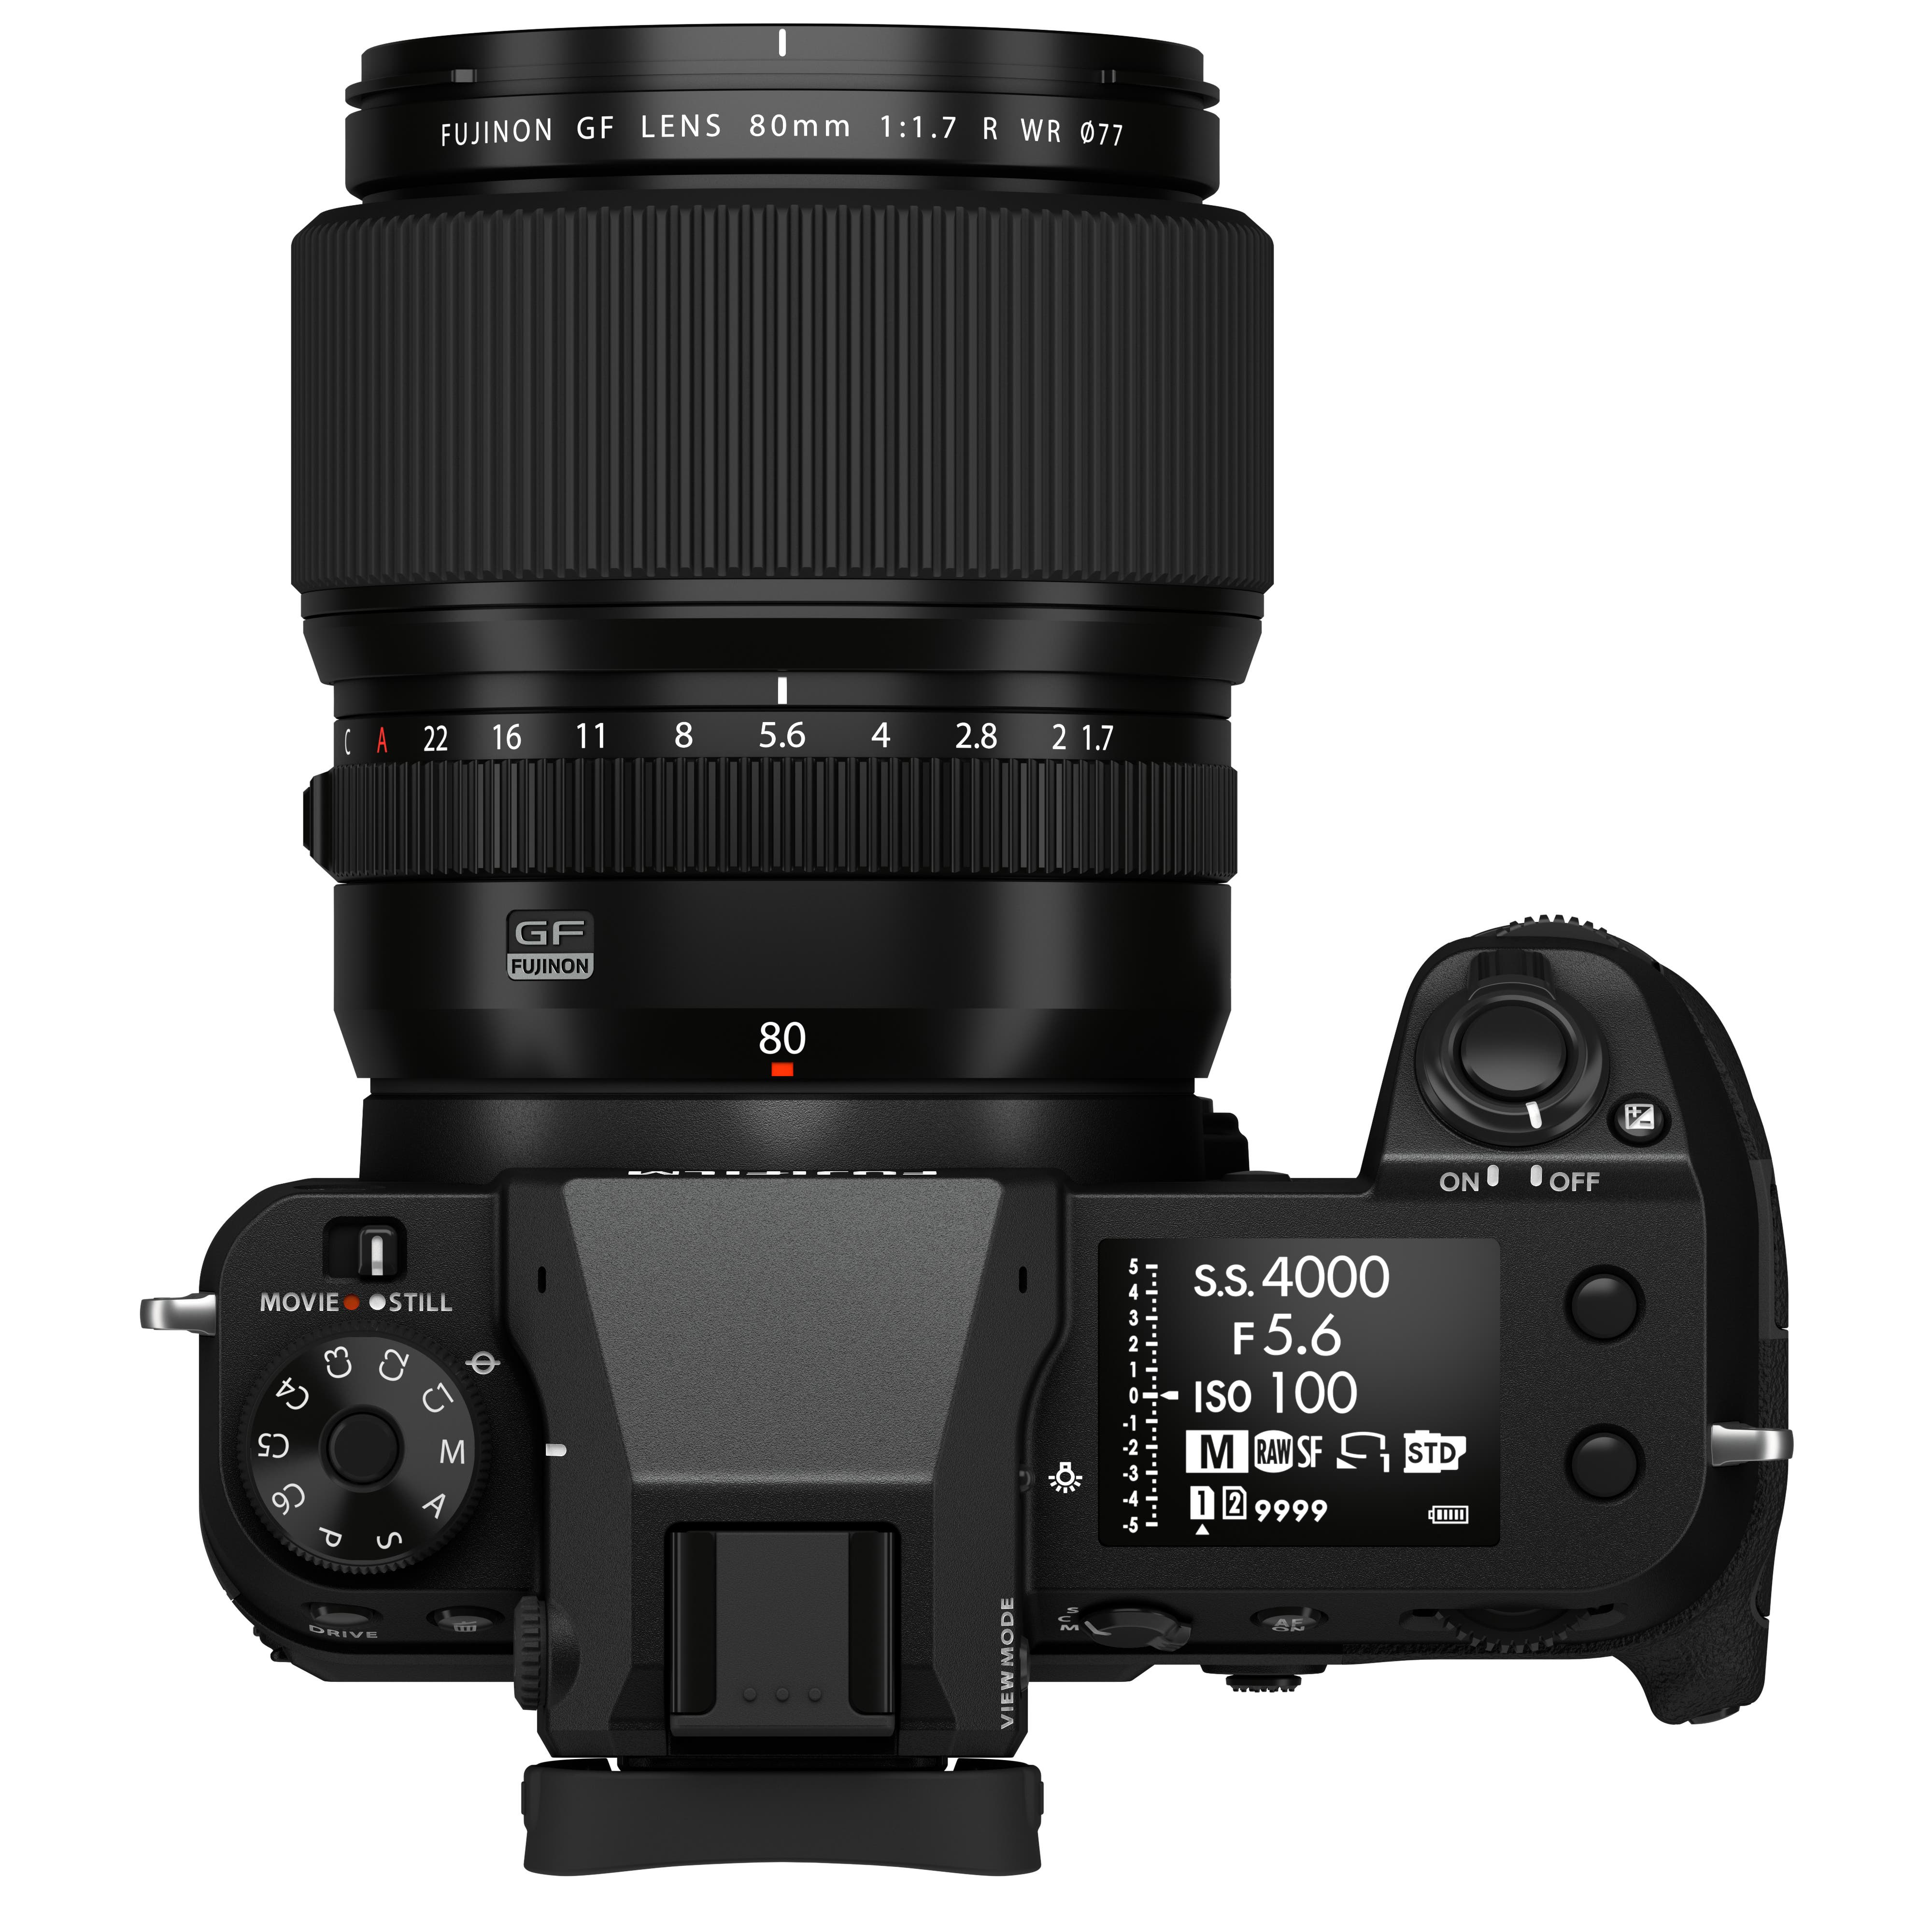 Fujifilm's New GFX100S and GF80mm F1.7 Are Stunners!